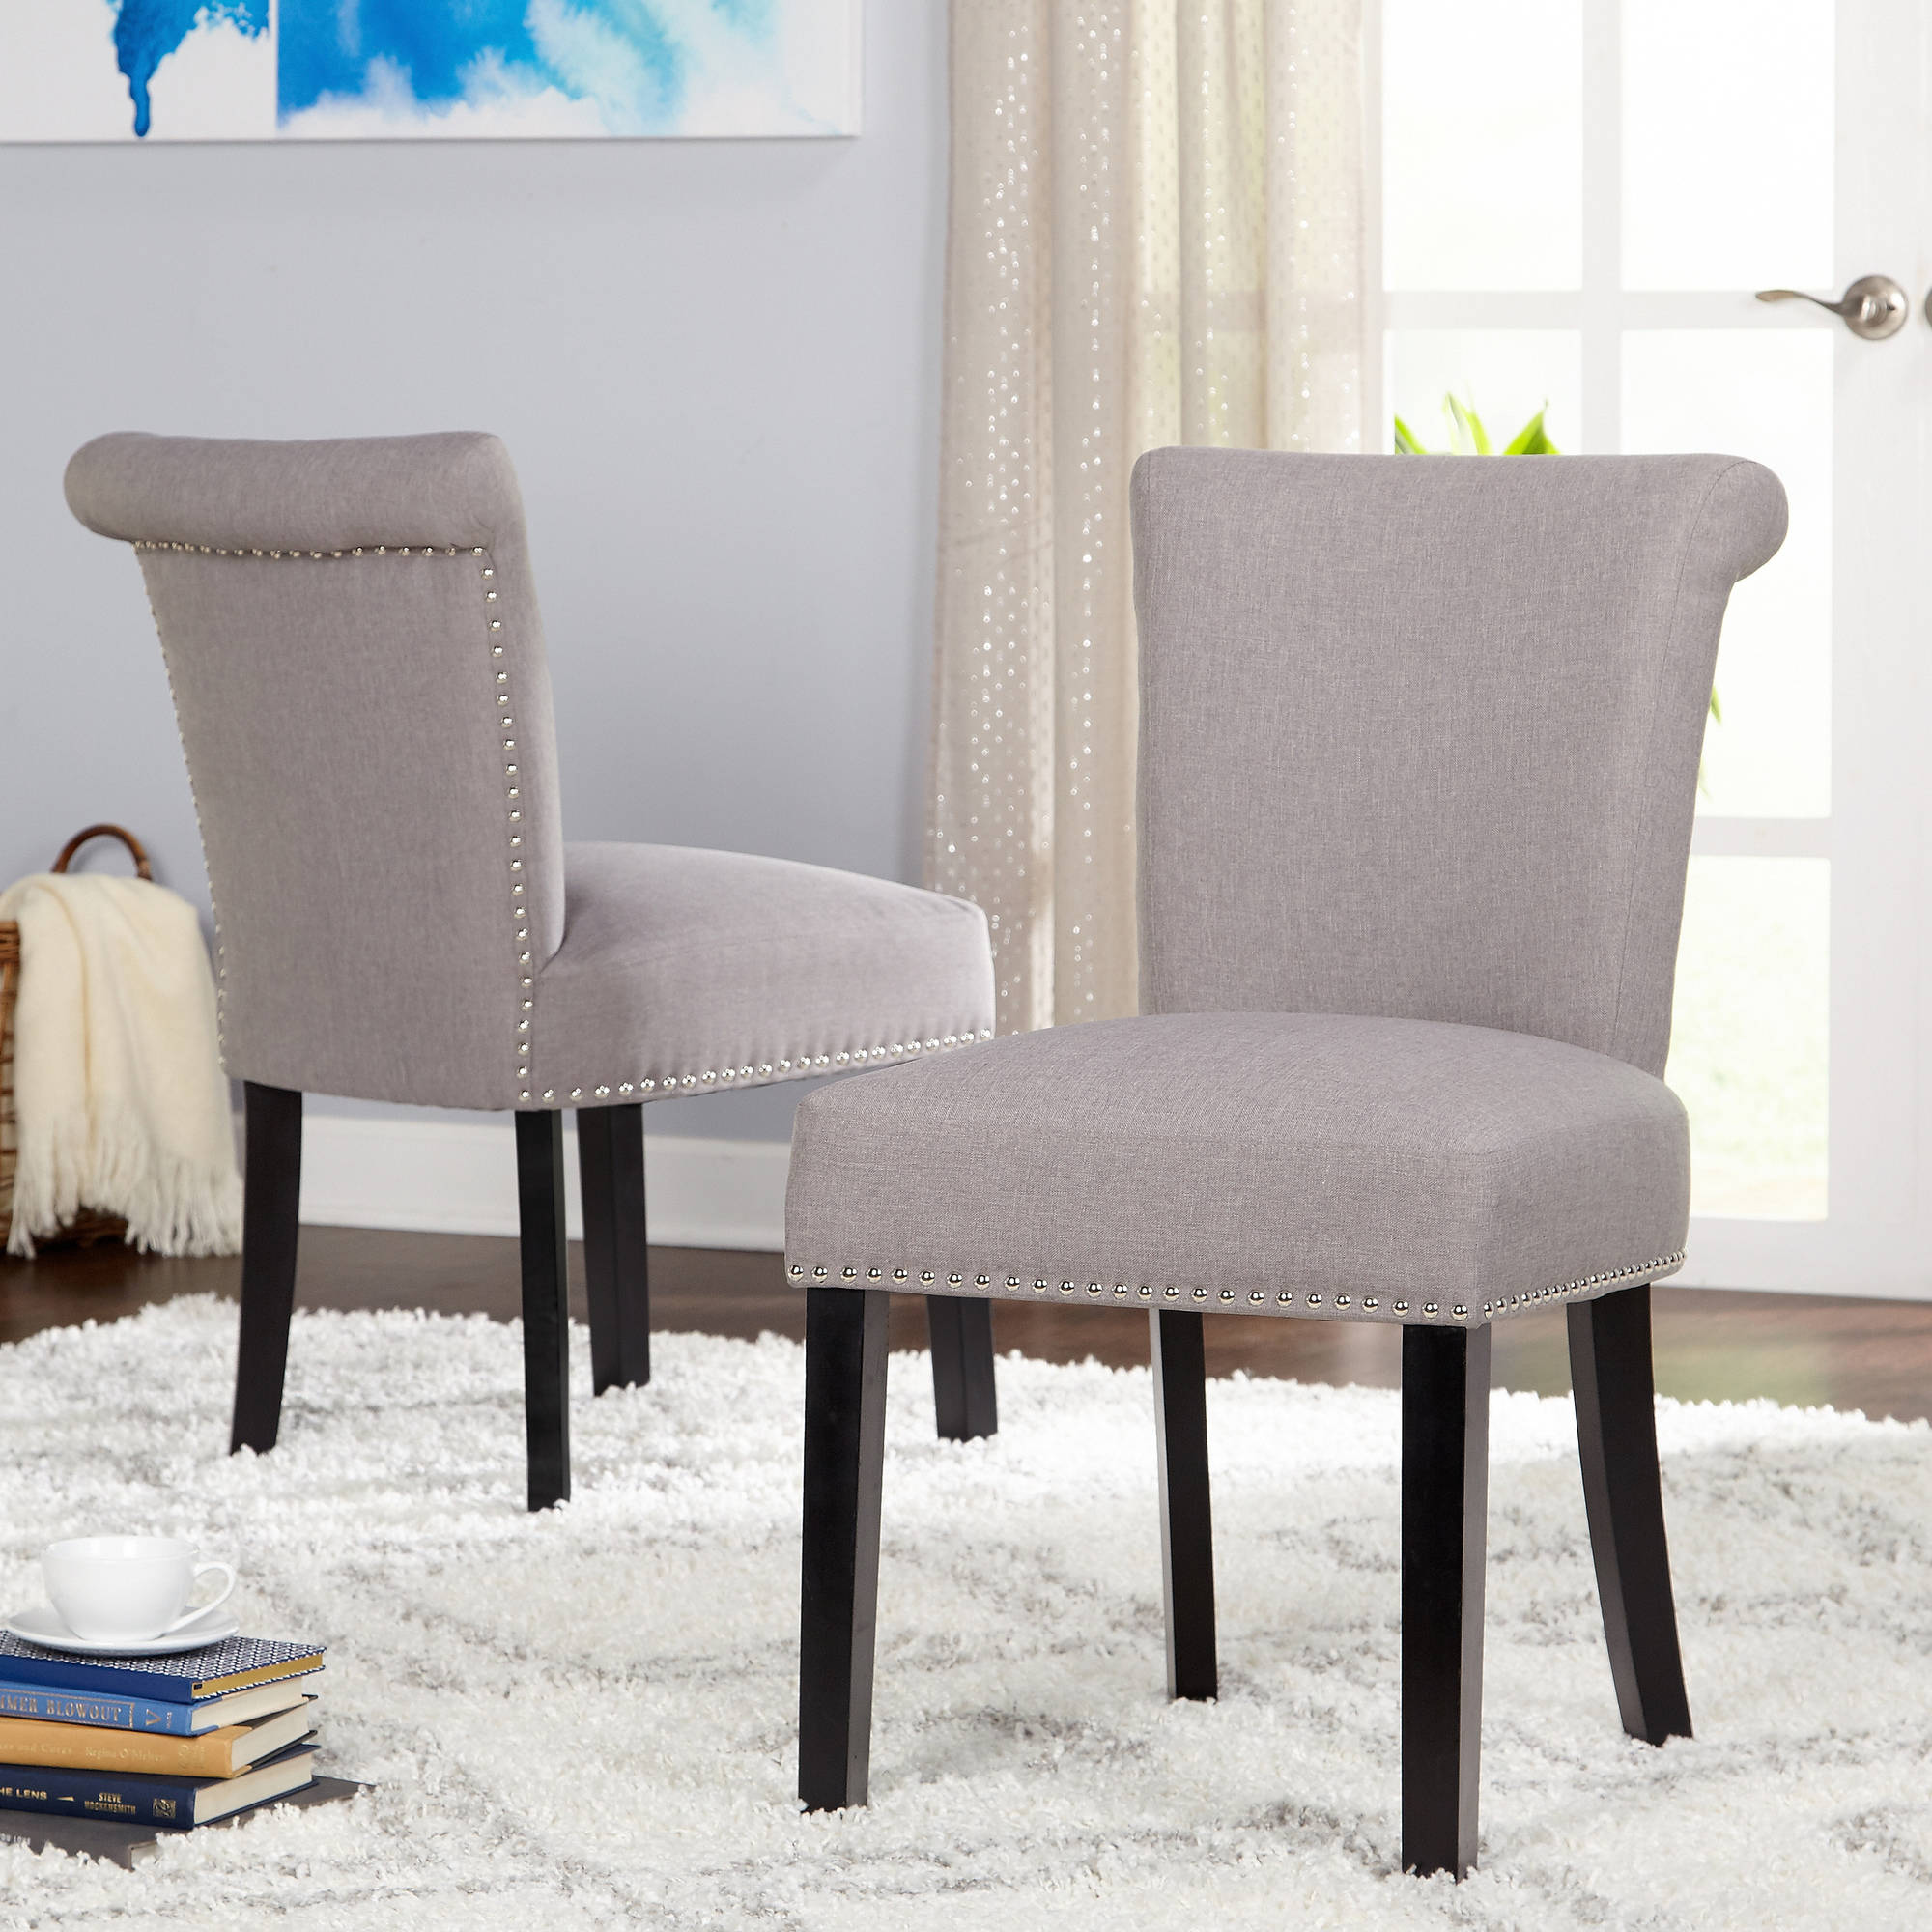 Adeline Dining Chair, Gray, Set of 2